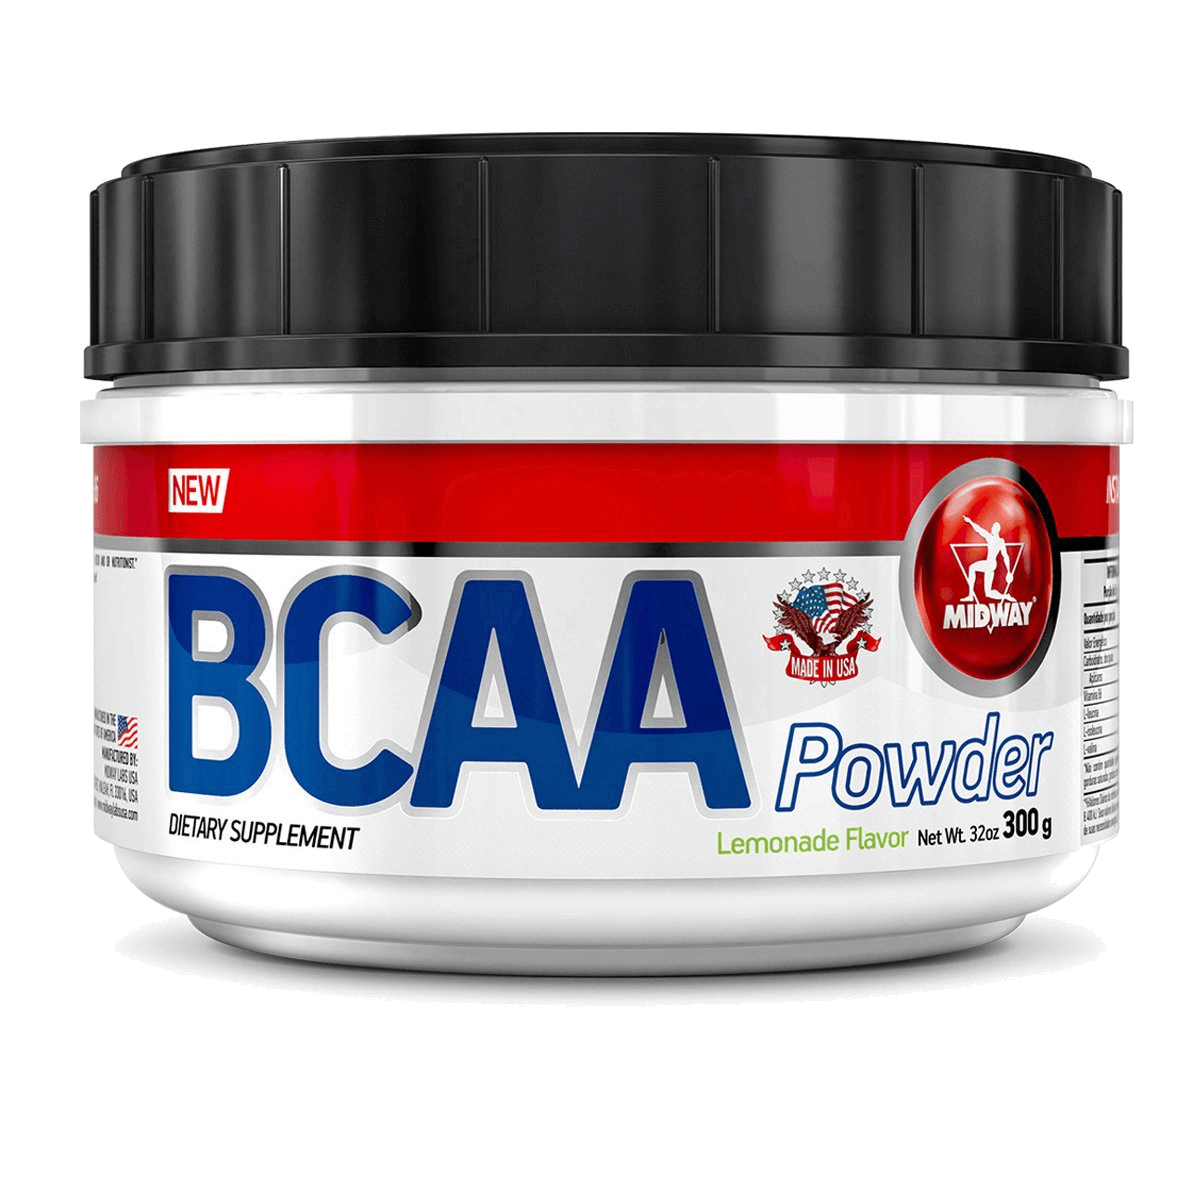 BCAA Powder Lemonade Flavor Midway 300g